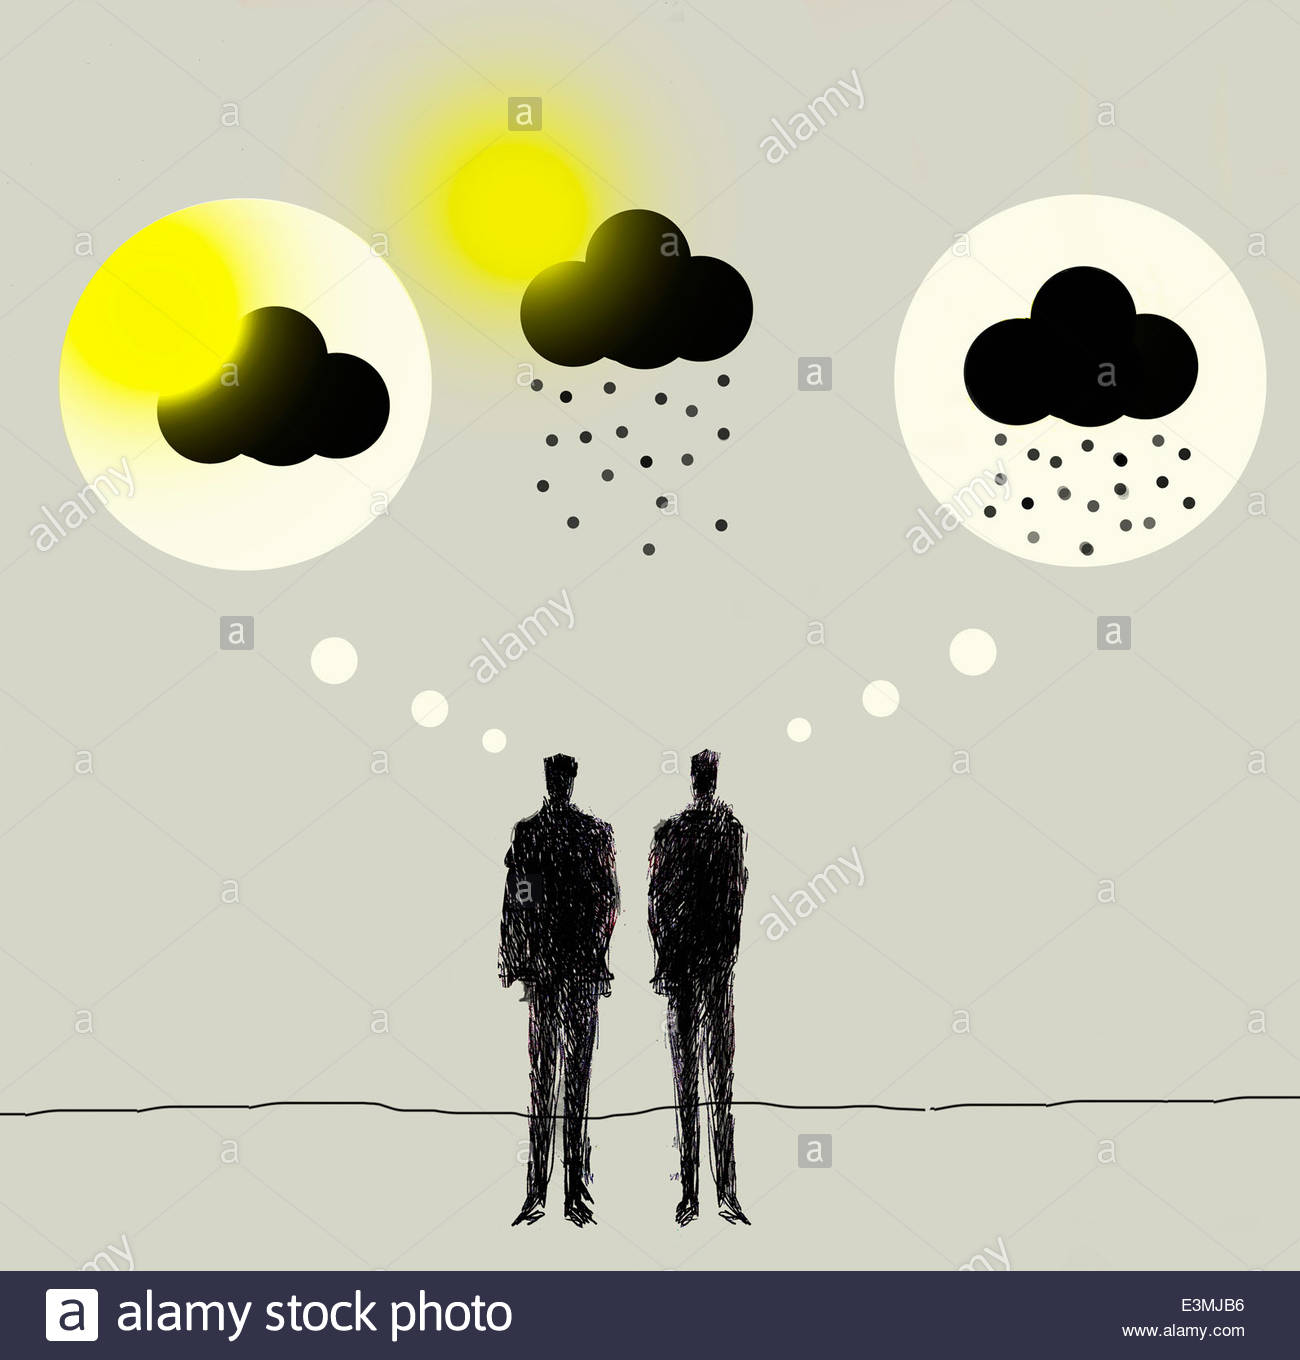 Contrasting sun and rain clouds in thought bubbles above businessmen - Stock Image